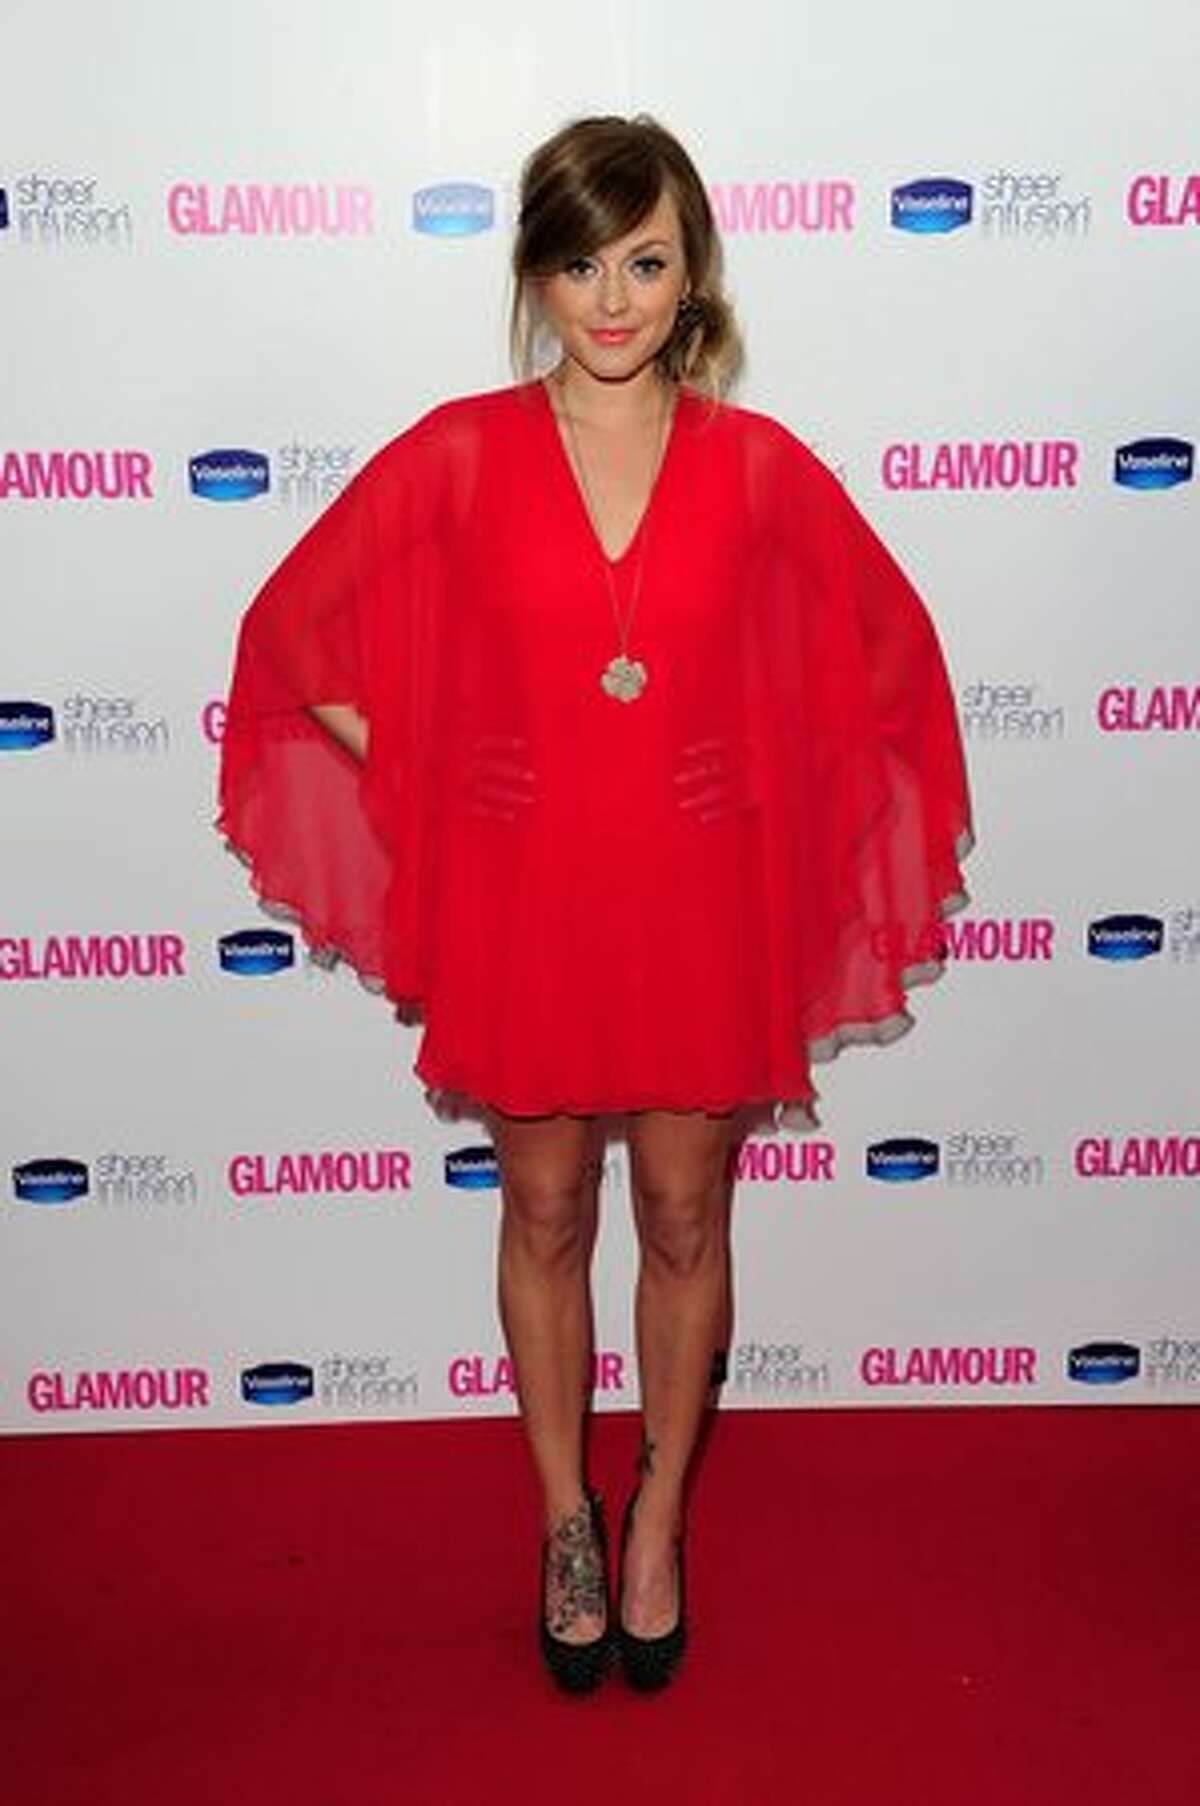 Fearne Cotton arrives at the 2010 Glamour Women of The Year Awards.